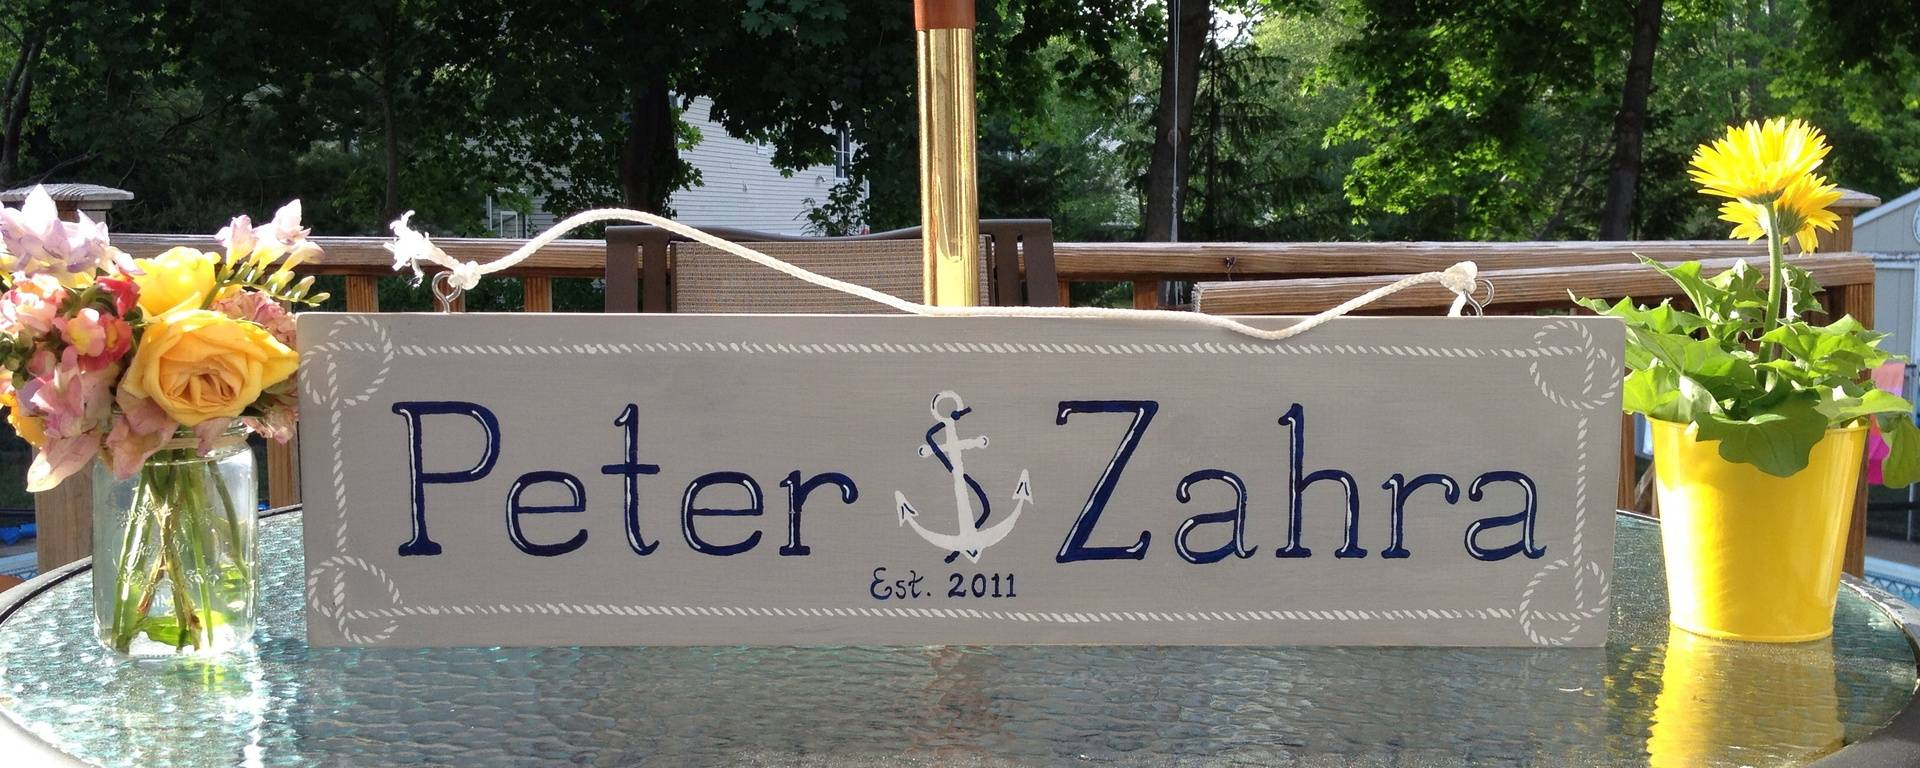 Nautical name sign